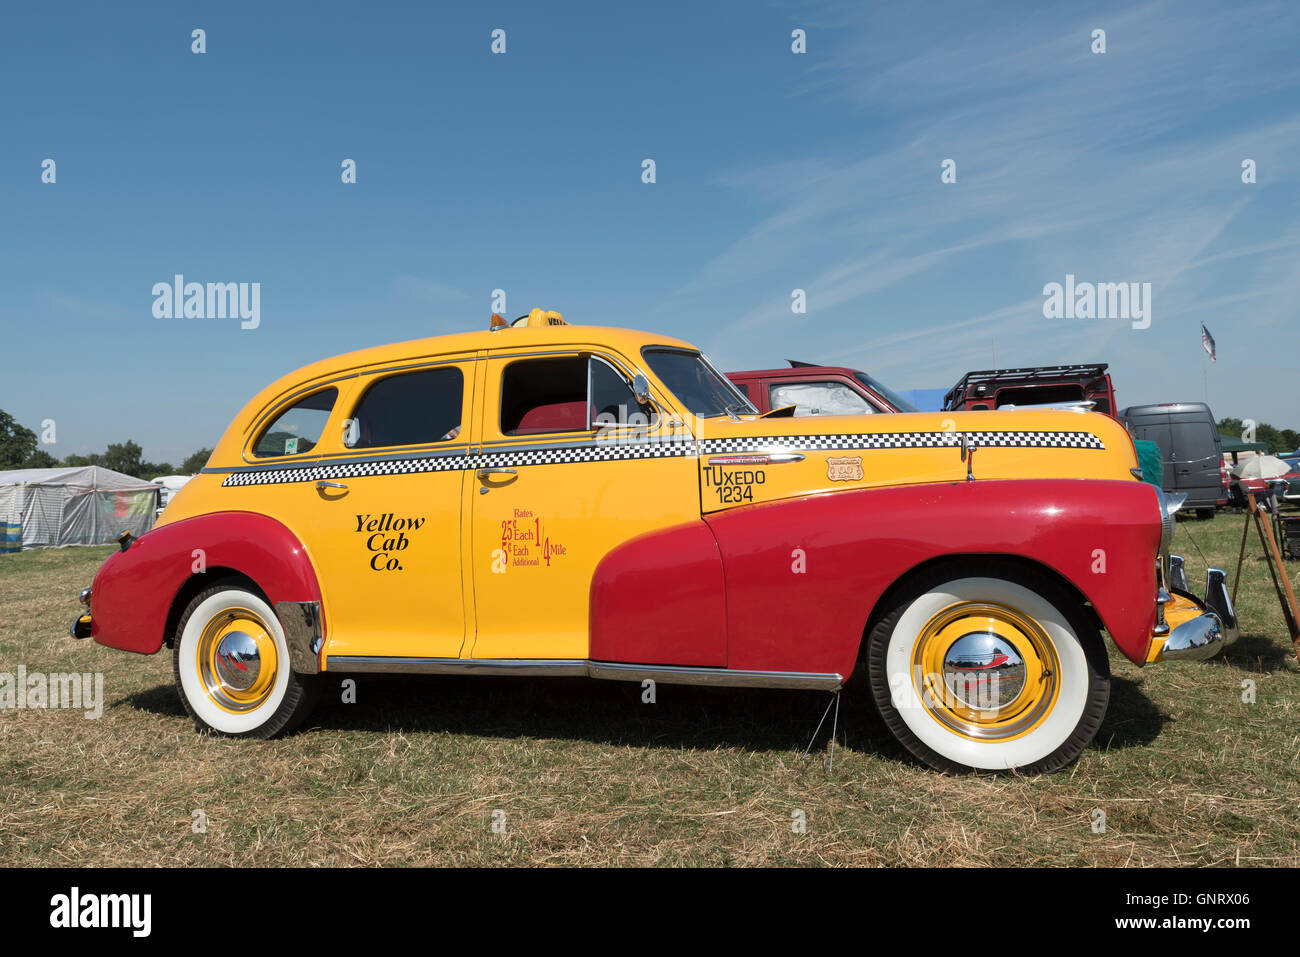 old-new-york-yellow-taxi-cab-at-steam-rally-and-country-fair-stow-GNRX06.jpg